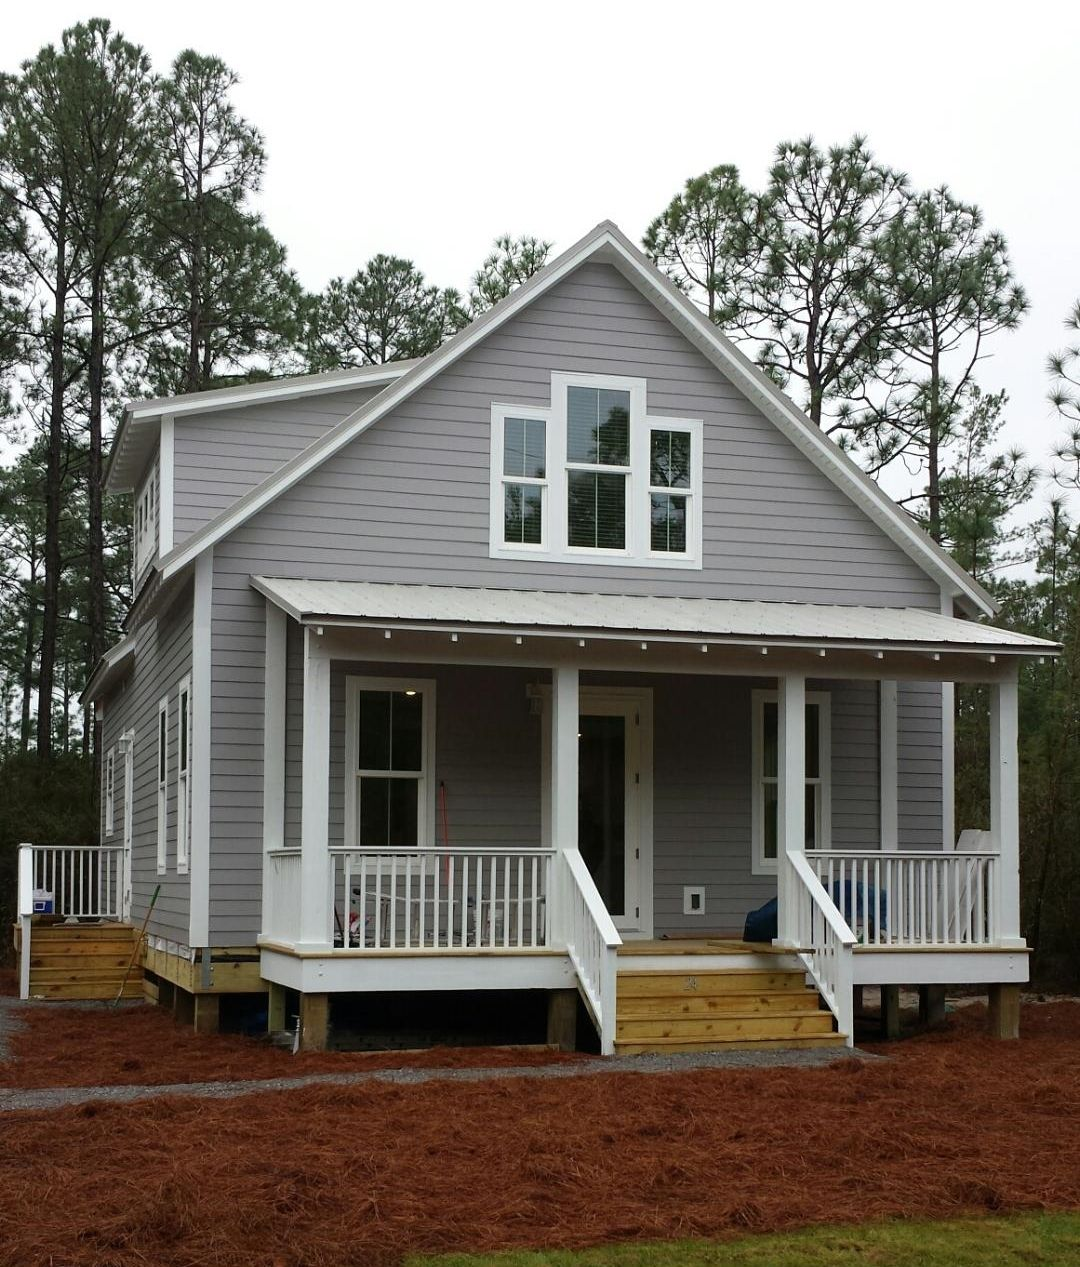 Greenbriar Modular Home Santa Rosa Beach Florida Custom Built Modular Homes At Affinity Building Systems In Lak Modular Homes Prefab Modular Homes Prefab Homes